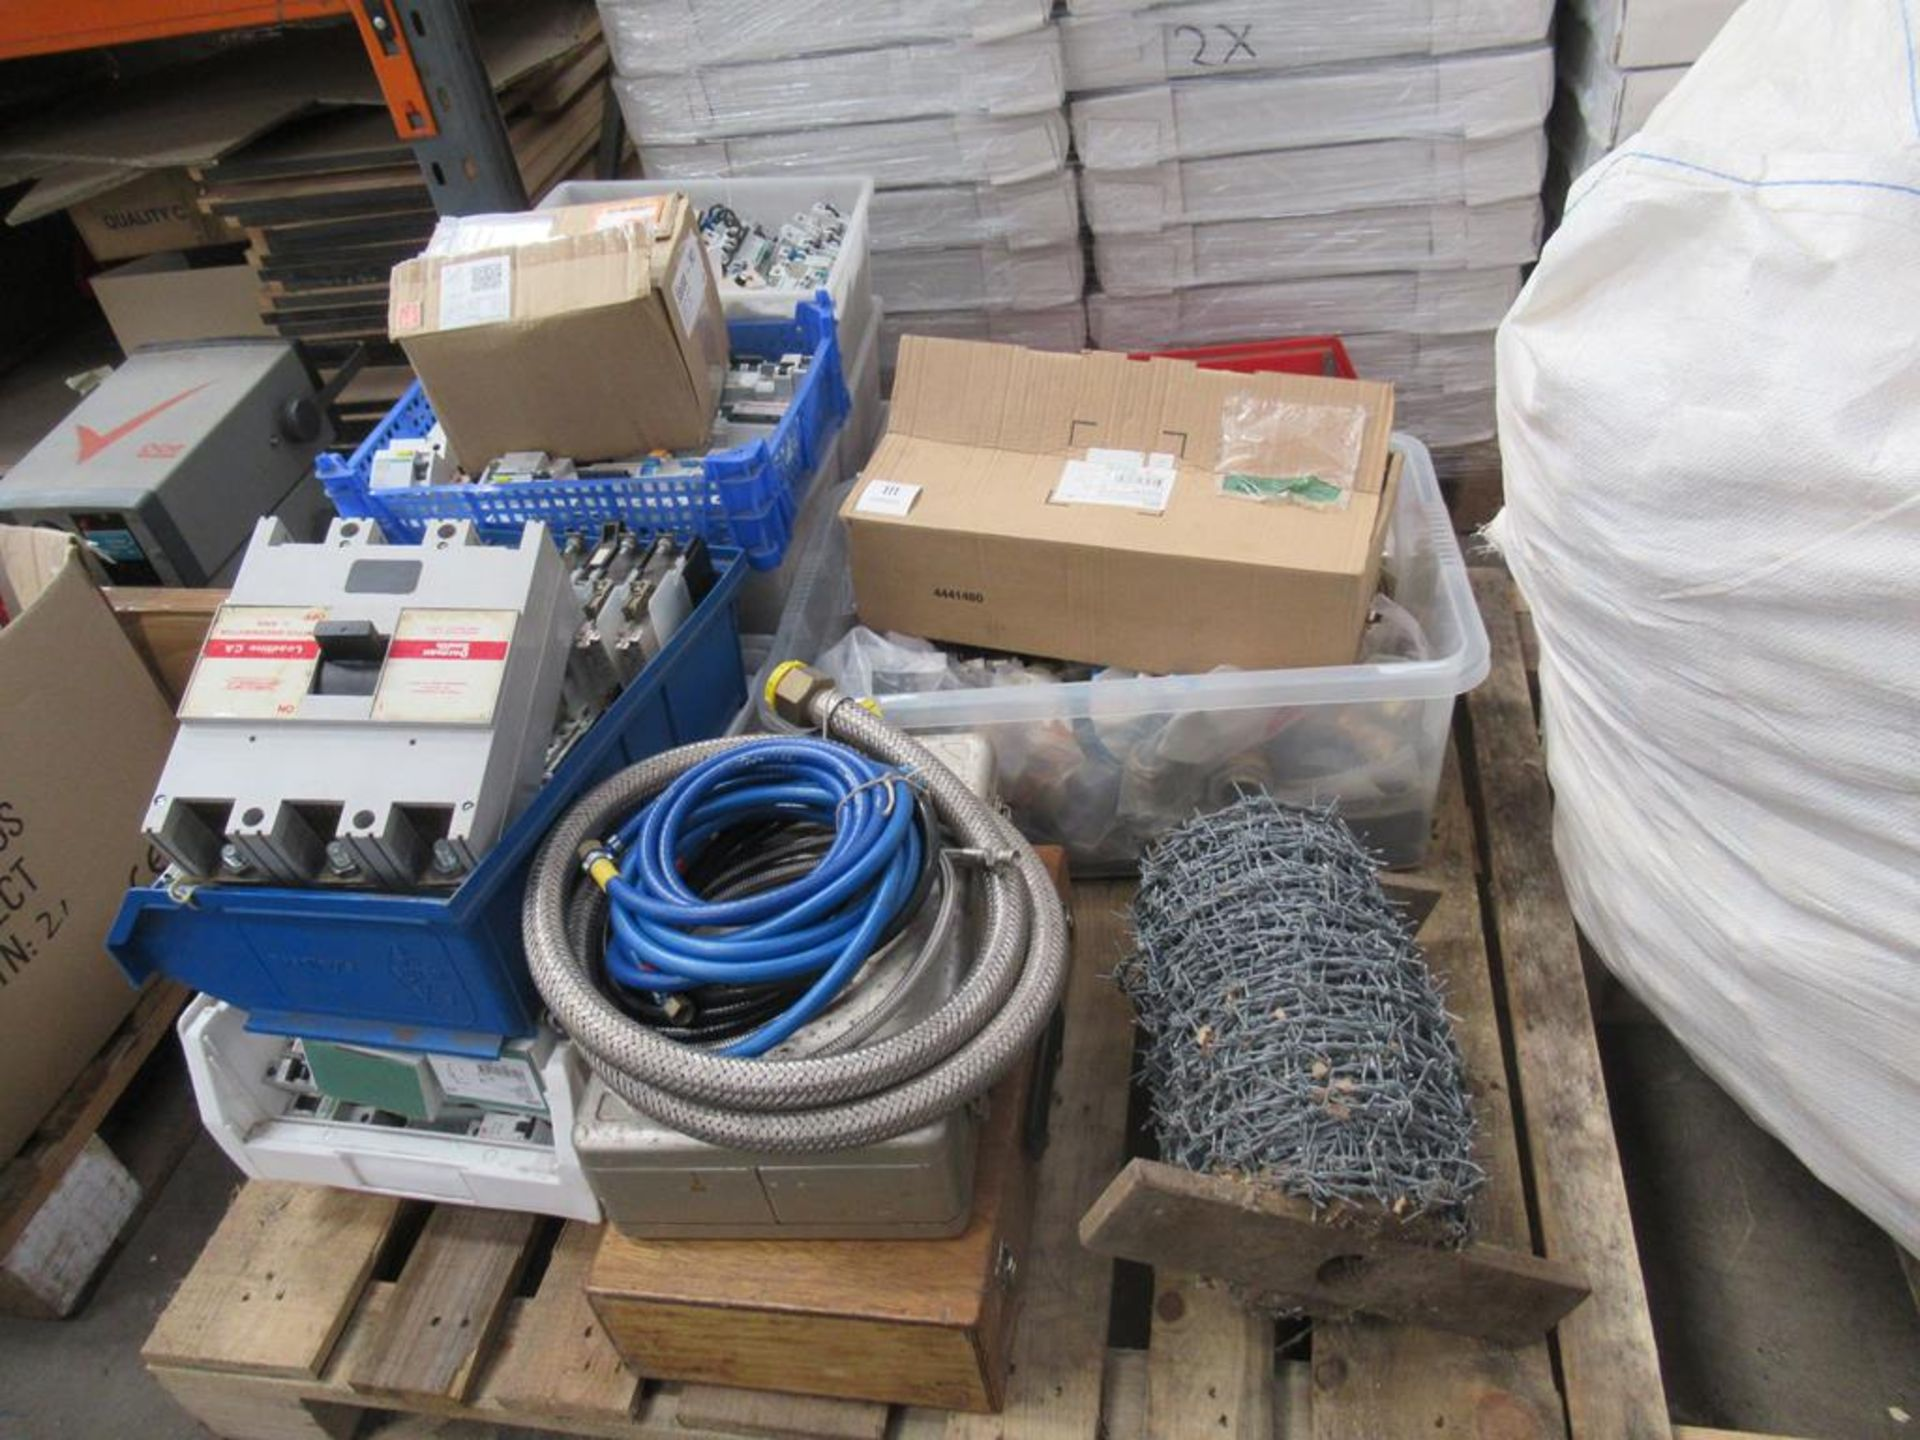 Pallet including a large qty of MCBs and RCDs, bar